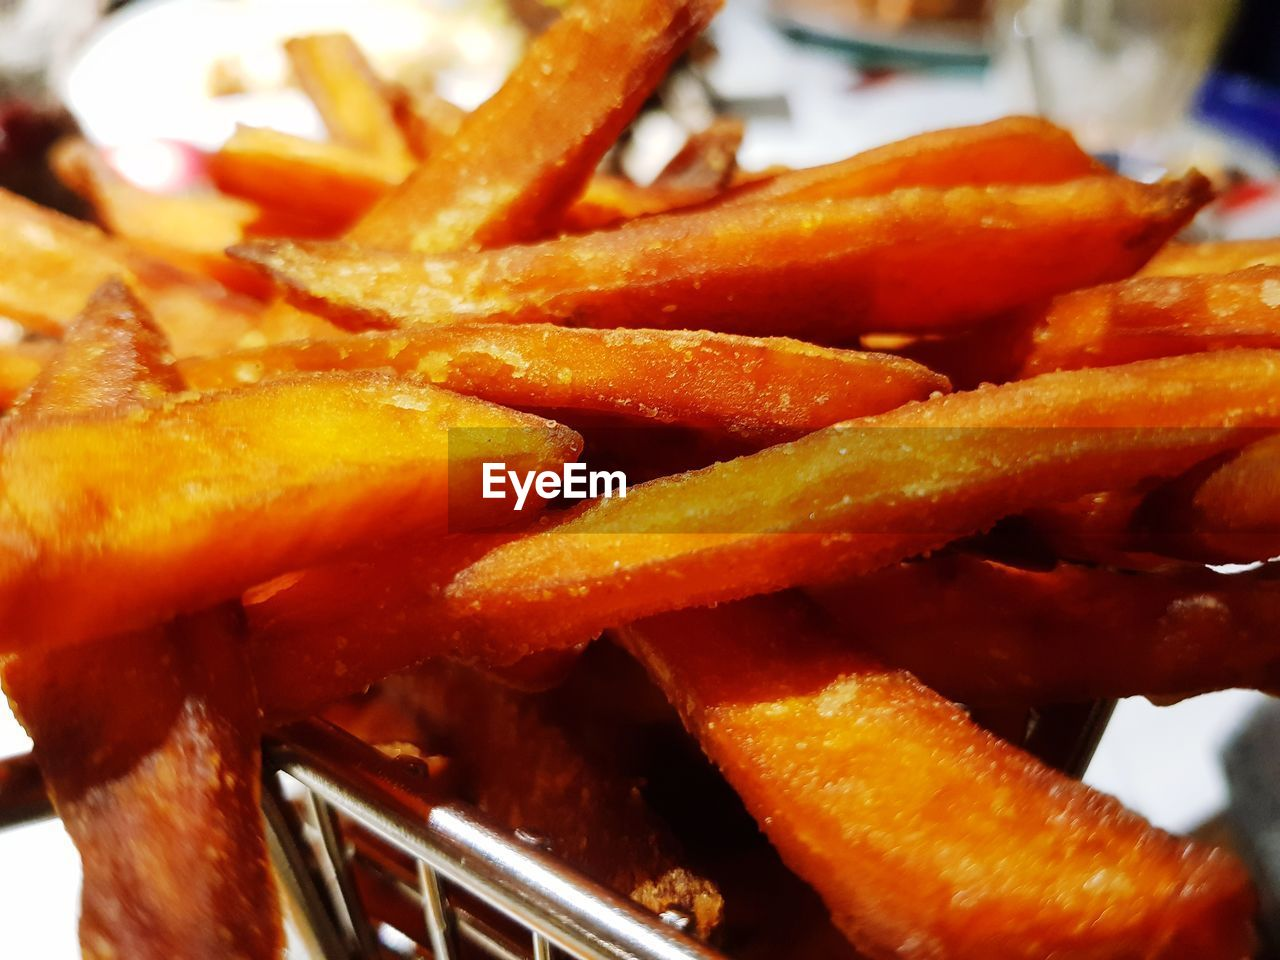 food and drink, food, fast food, close-up, french fries, unhealthy eating, prepared potato, ready-to-eat, freshness, fried, indoors, potato, still life, no people, deep fried, orange color, selective focus, snack, serving size, large group of objects, temptation, fast food french fries